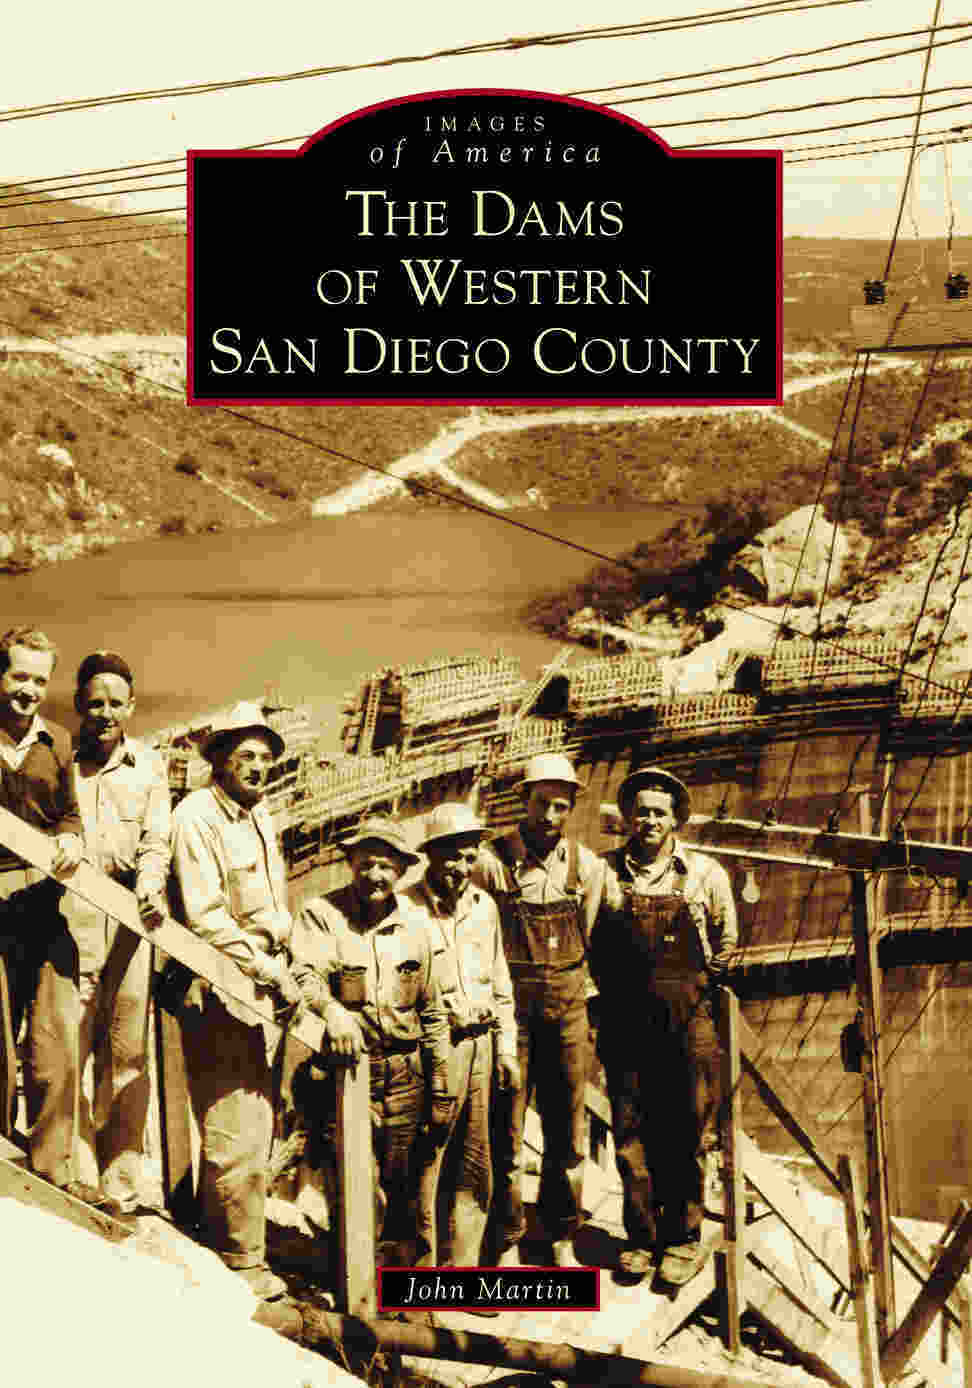 The Dams of Western San Diego County